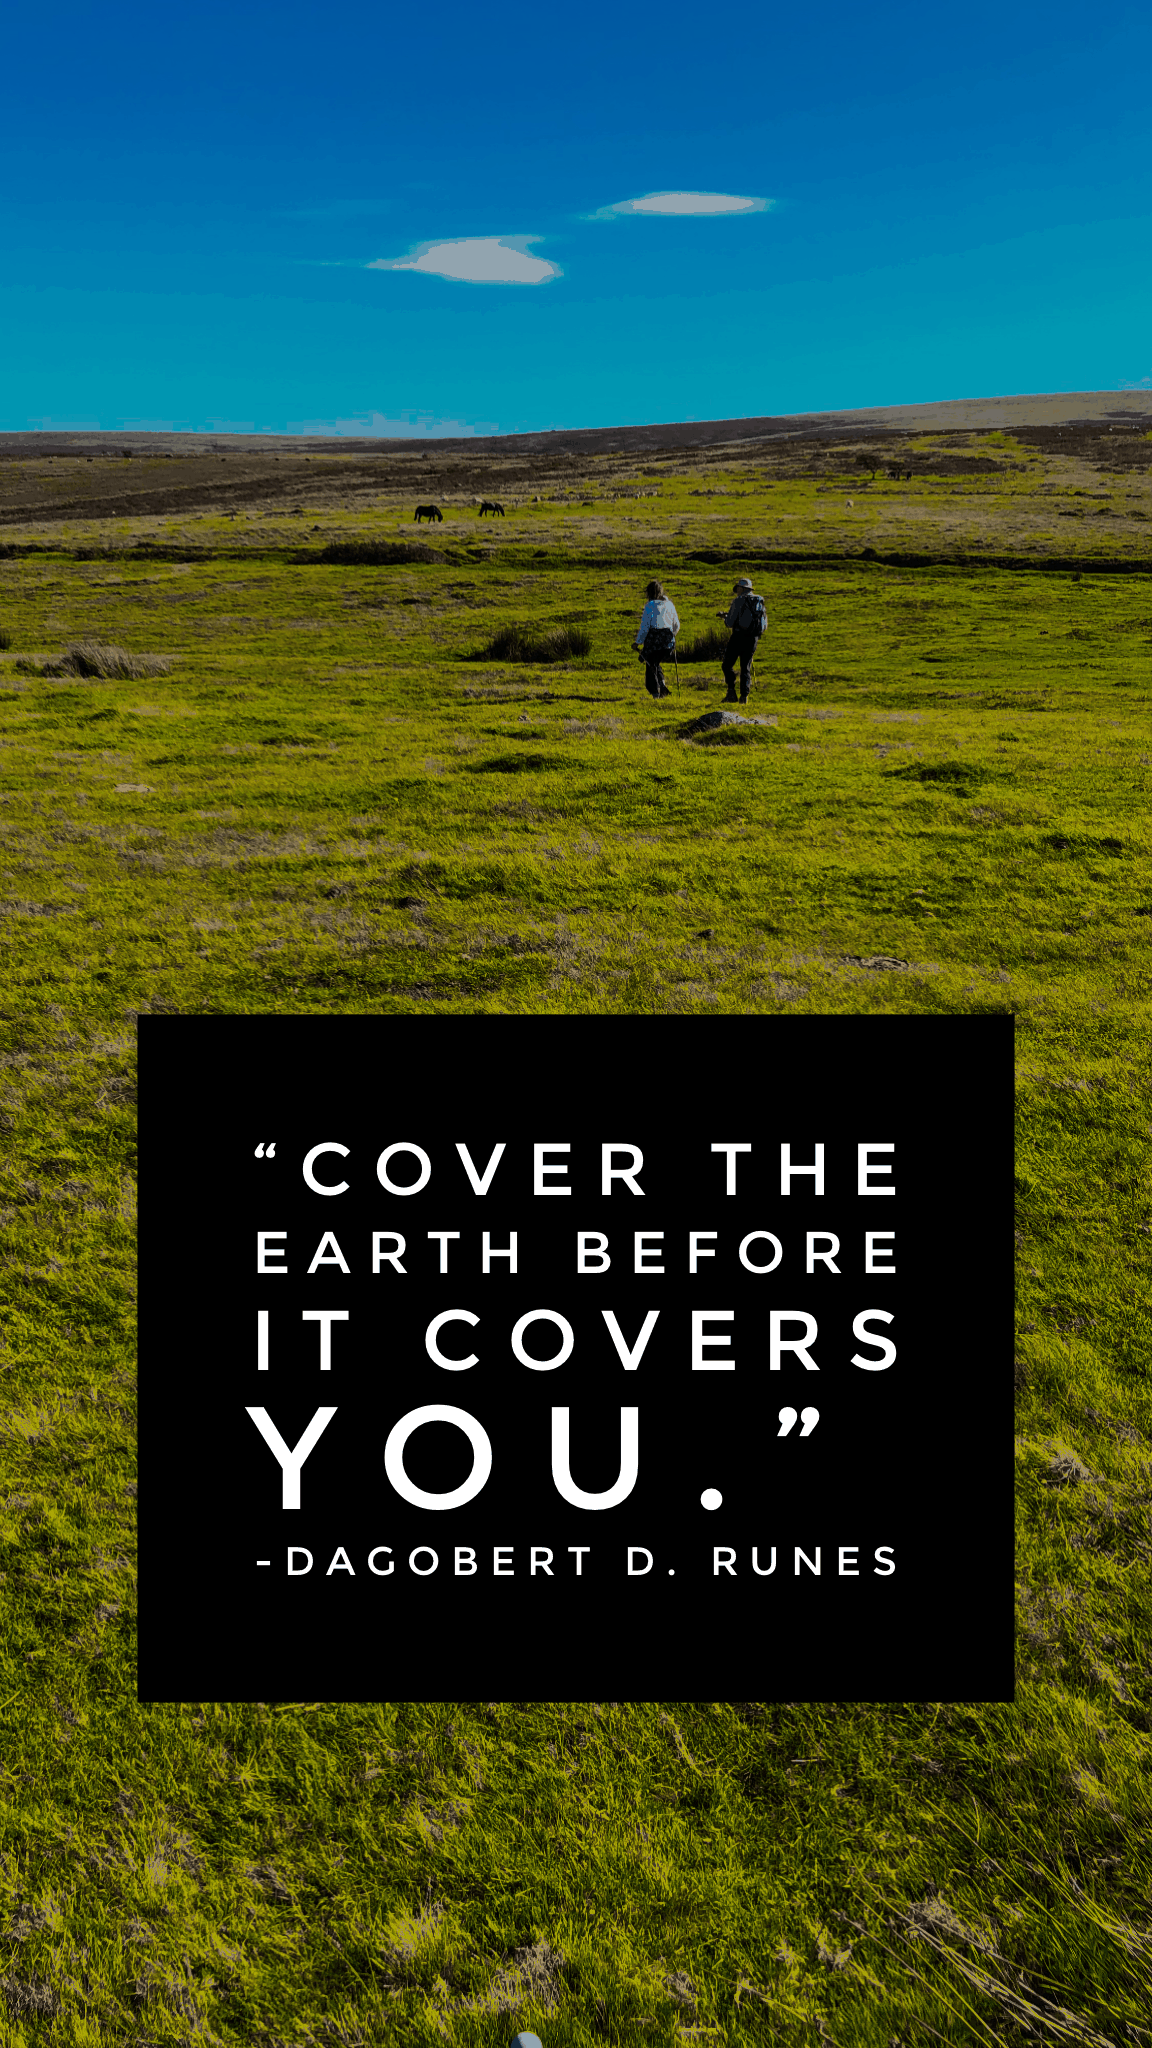 Cover the earth before it covers you hiking quote